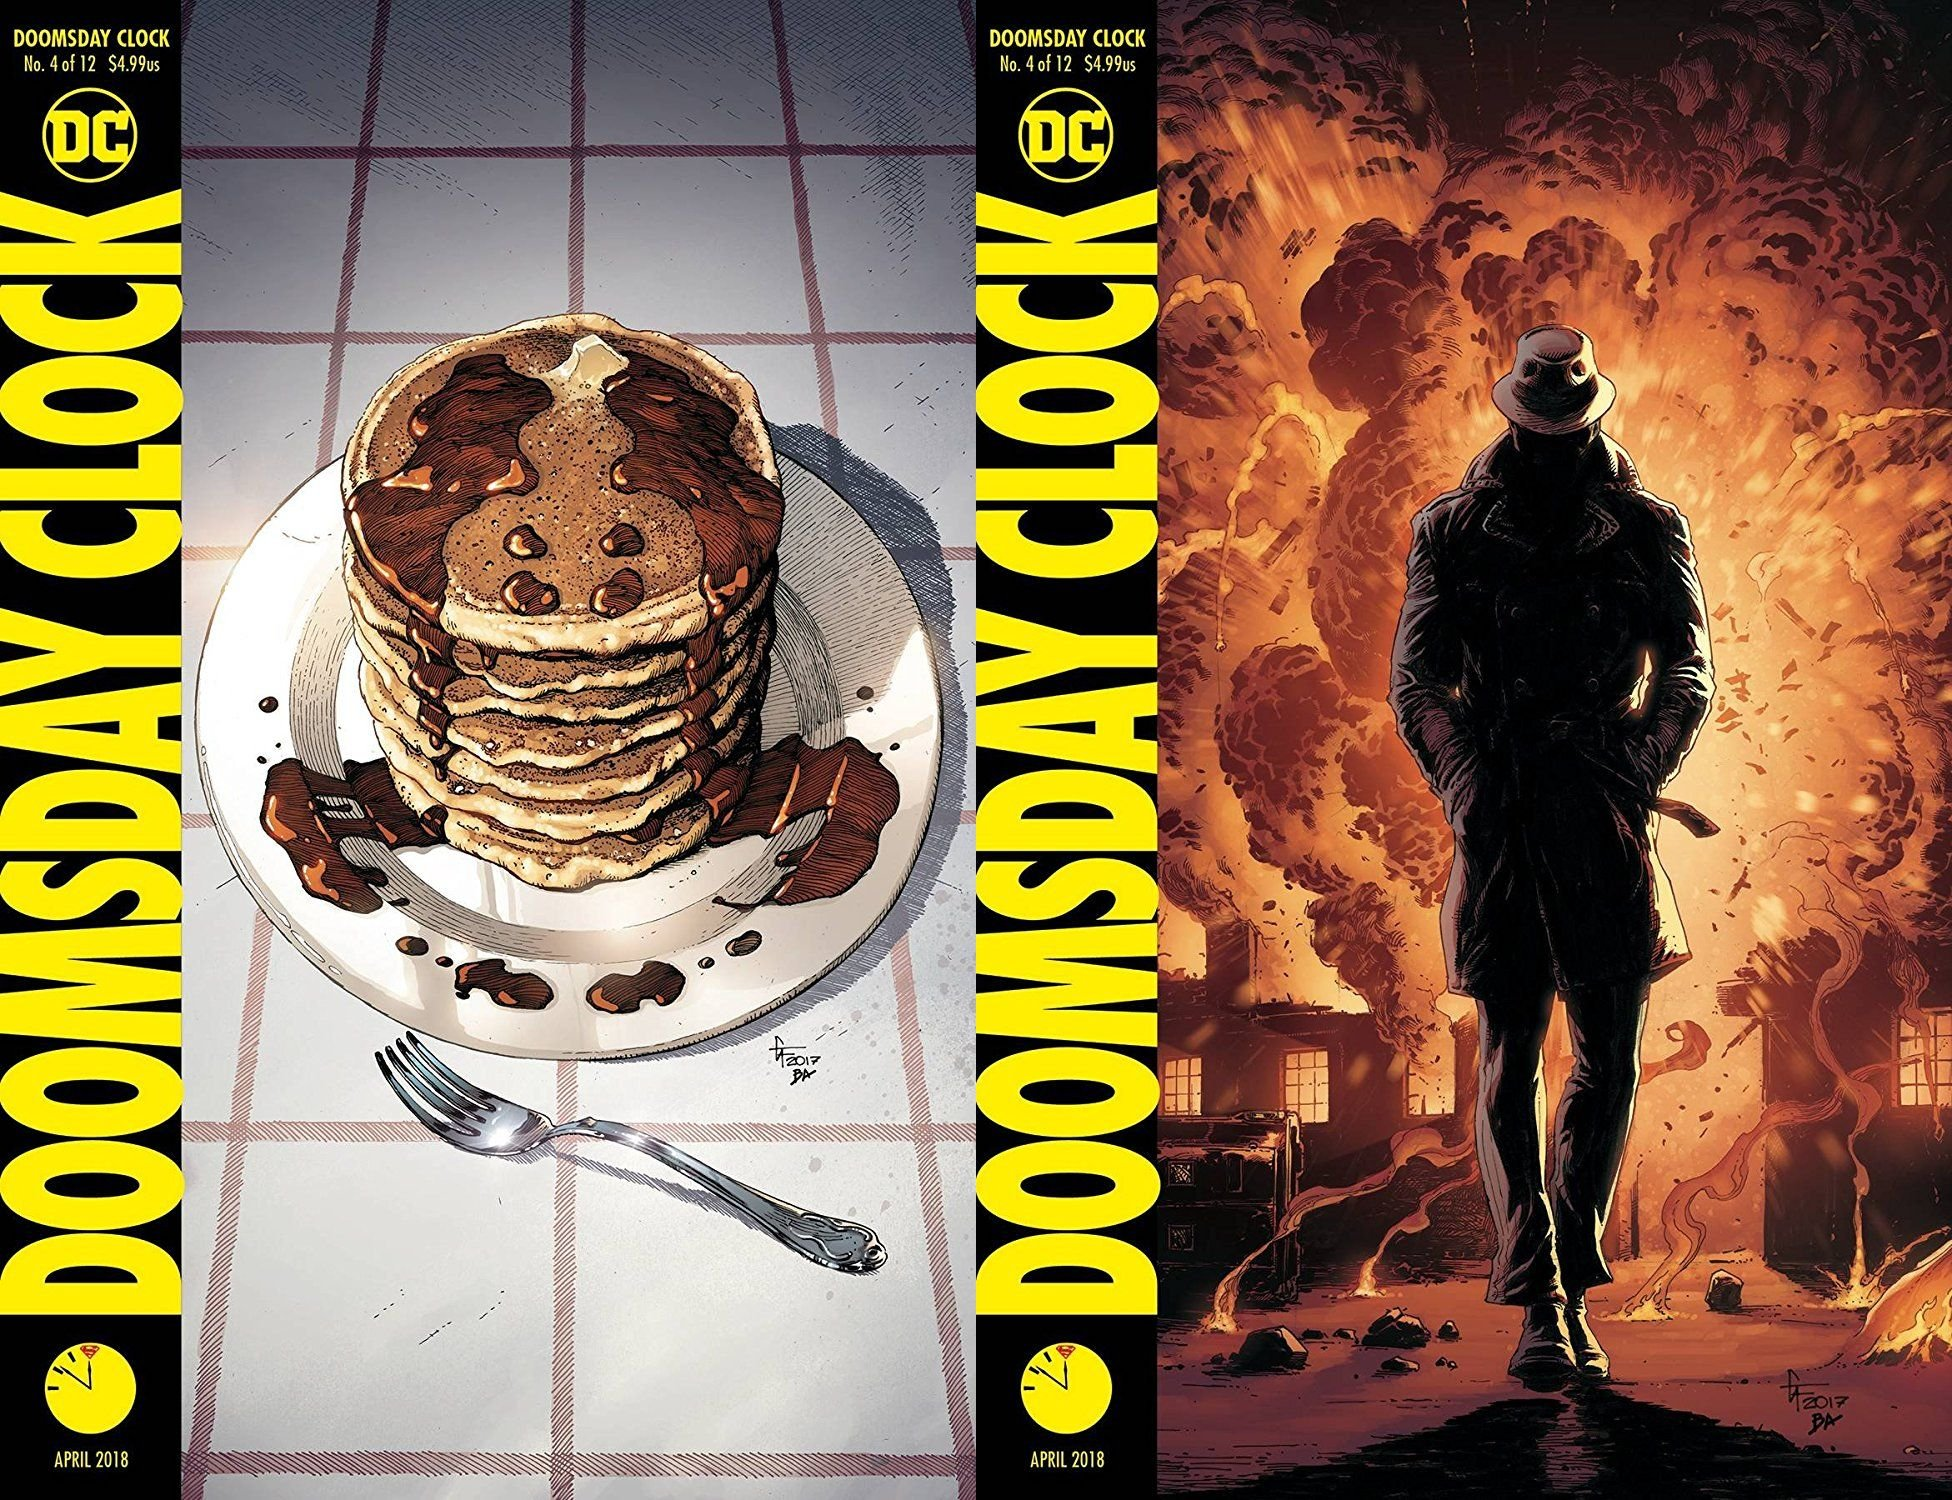 Doomsday Clock 4 Of 12 Cover Set Release Date 2 28 18 Amazon